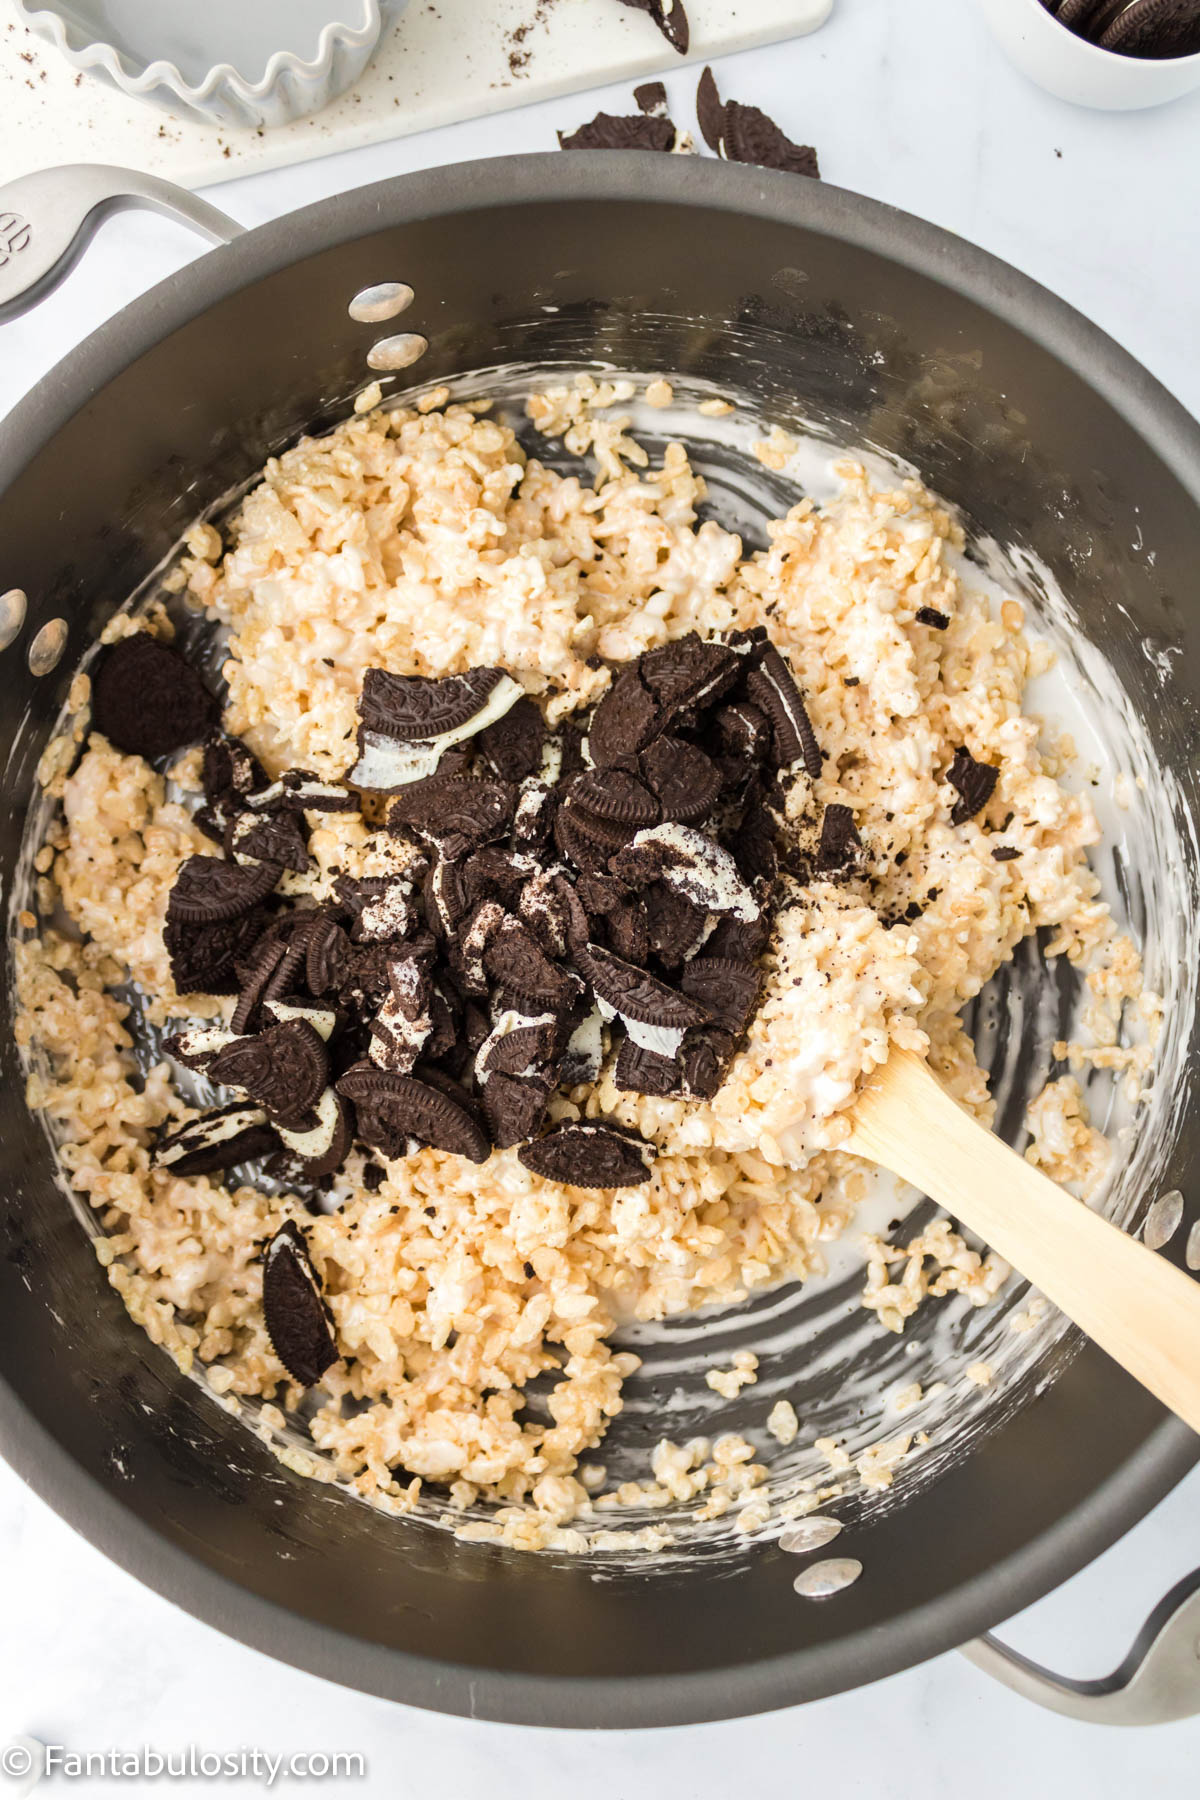 Add in chopped Oreo cookies